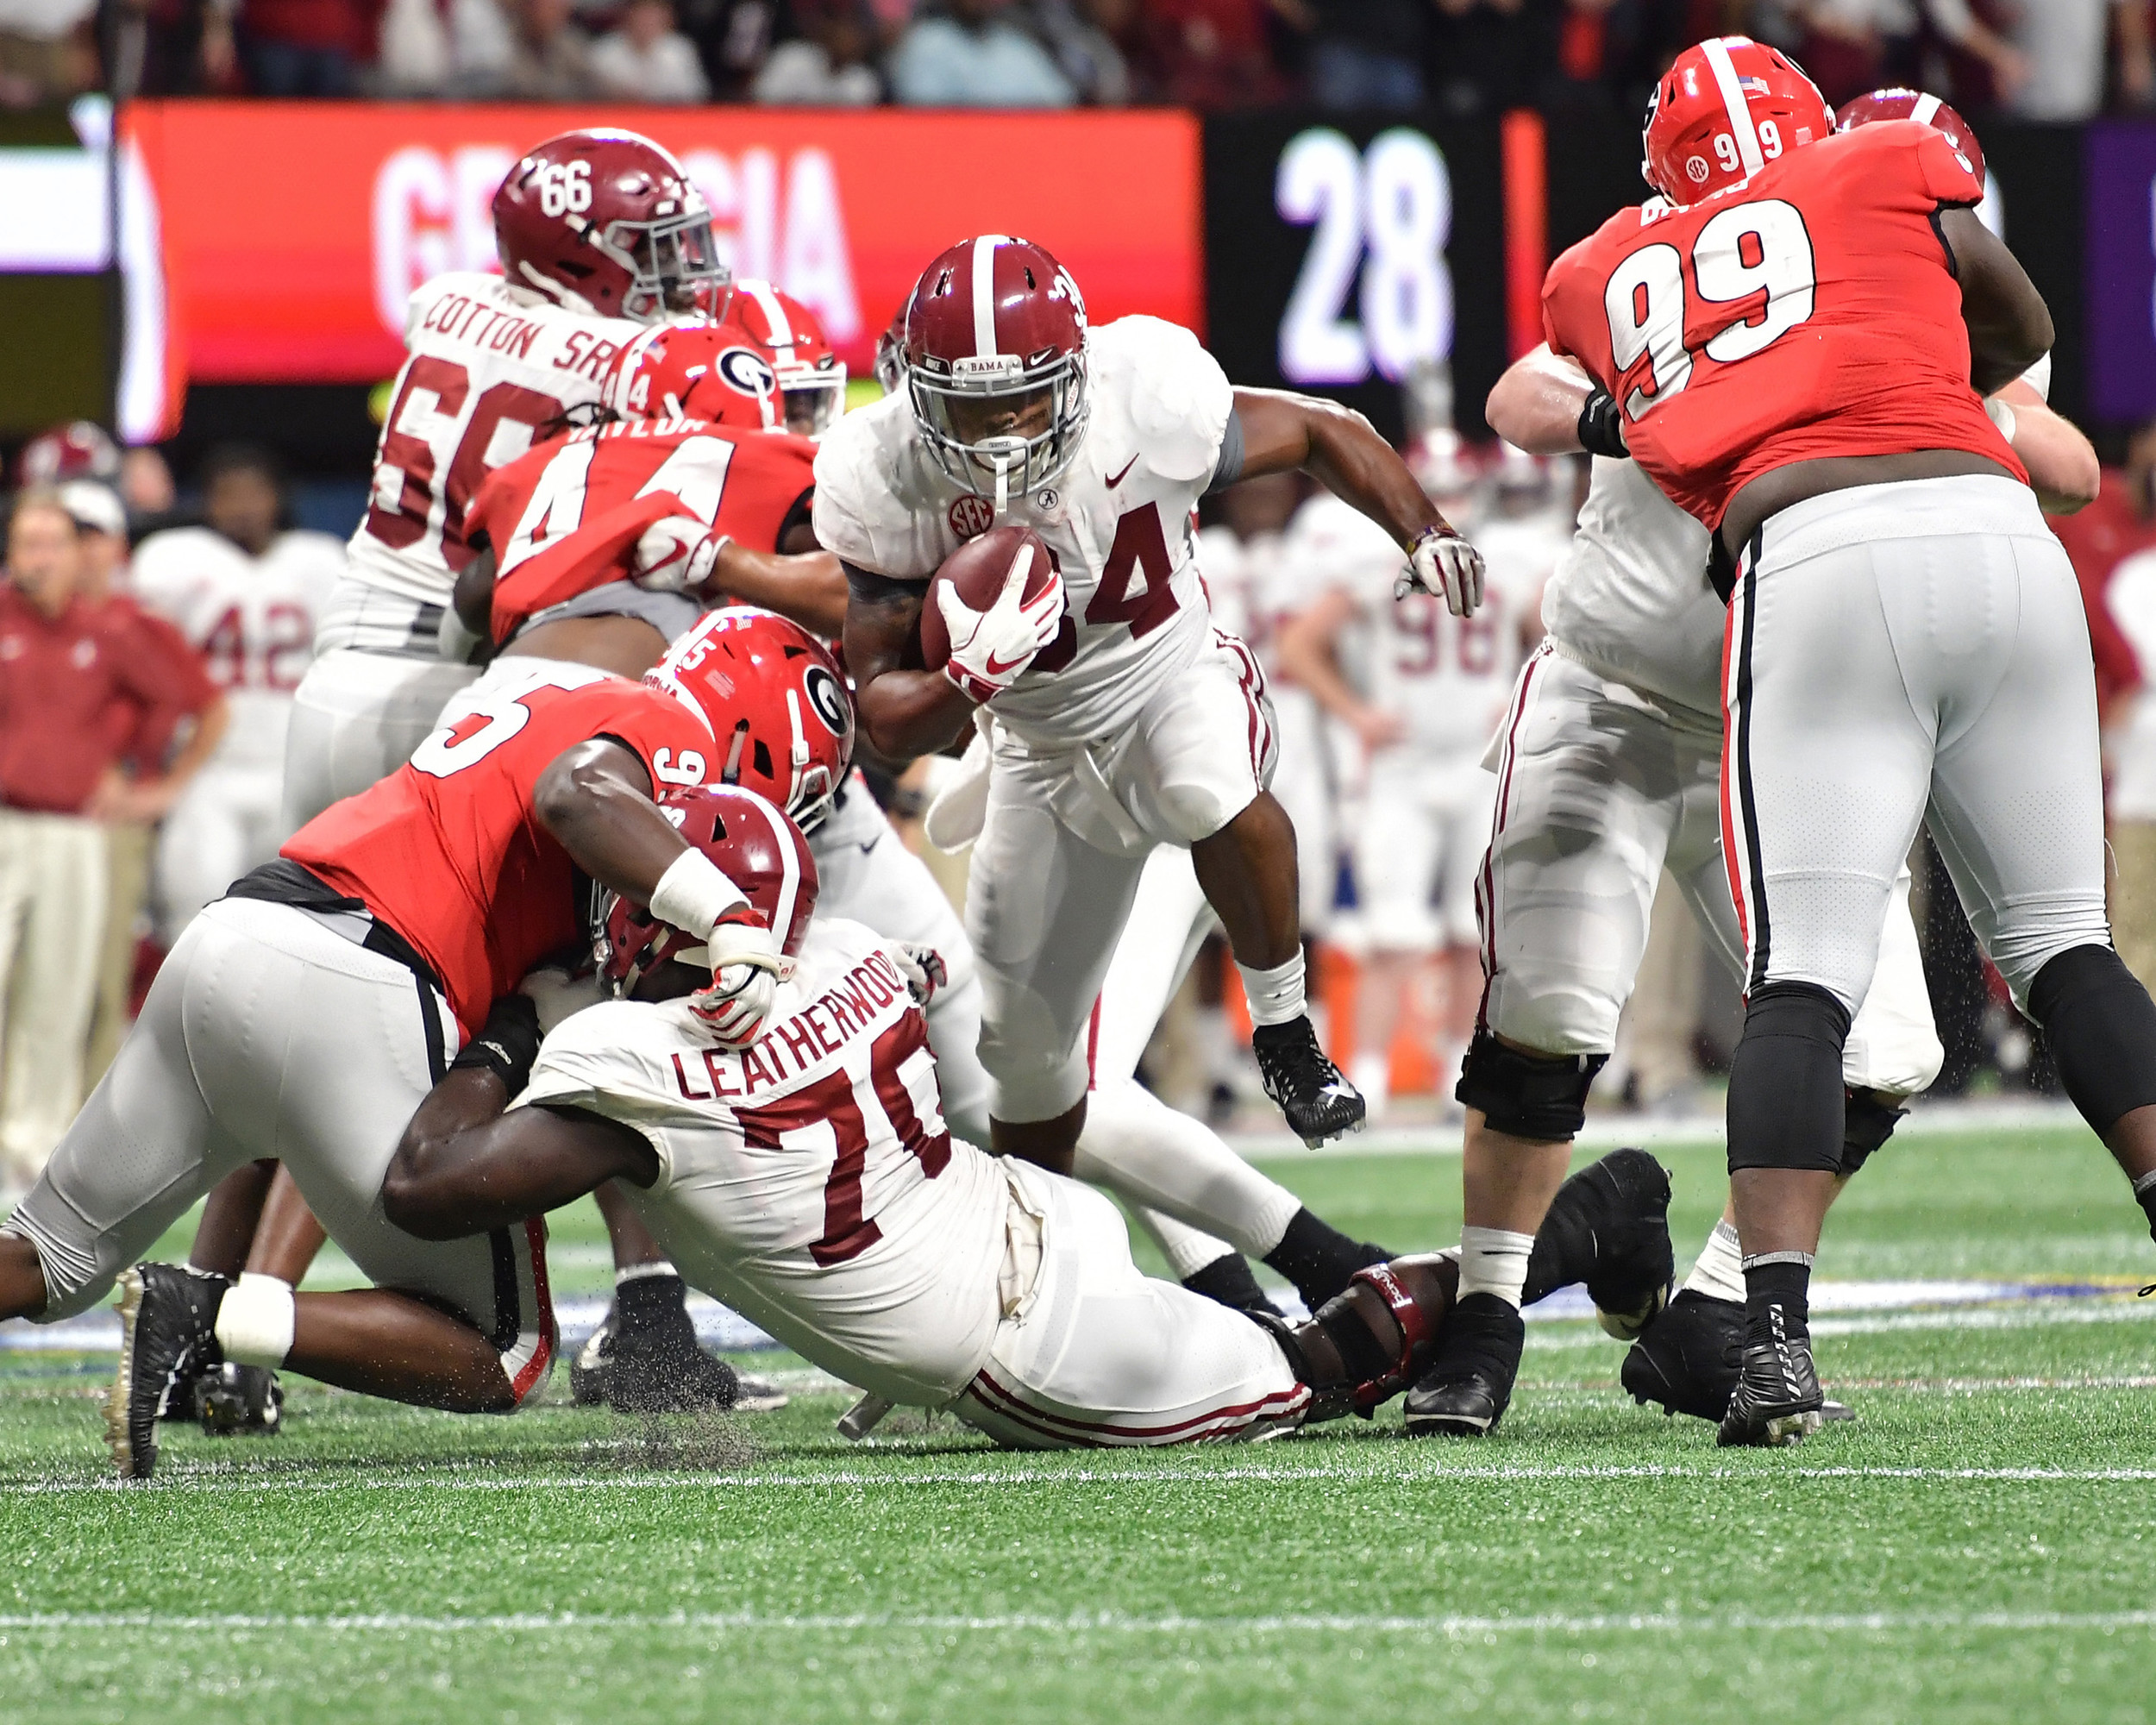 Alabama Crimson Tide running back Damien Harris (34) finds room to run late in the fourth quarter of the 2018 SEC Championship football game against the Georgia Bulldogs at Mercedes-Benz Stadium in Atlanta, Ga., on Dec. 1, 2018. Alabama wins 35-28. (Photo by Lee Walls)